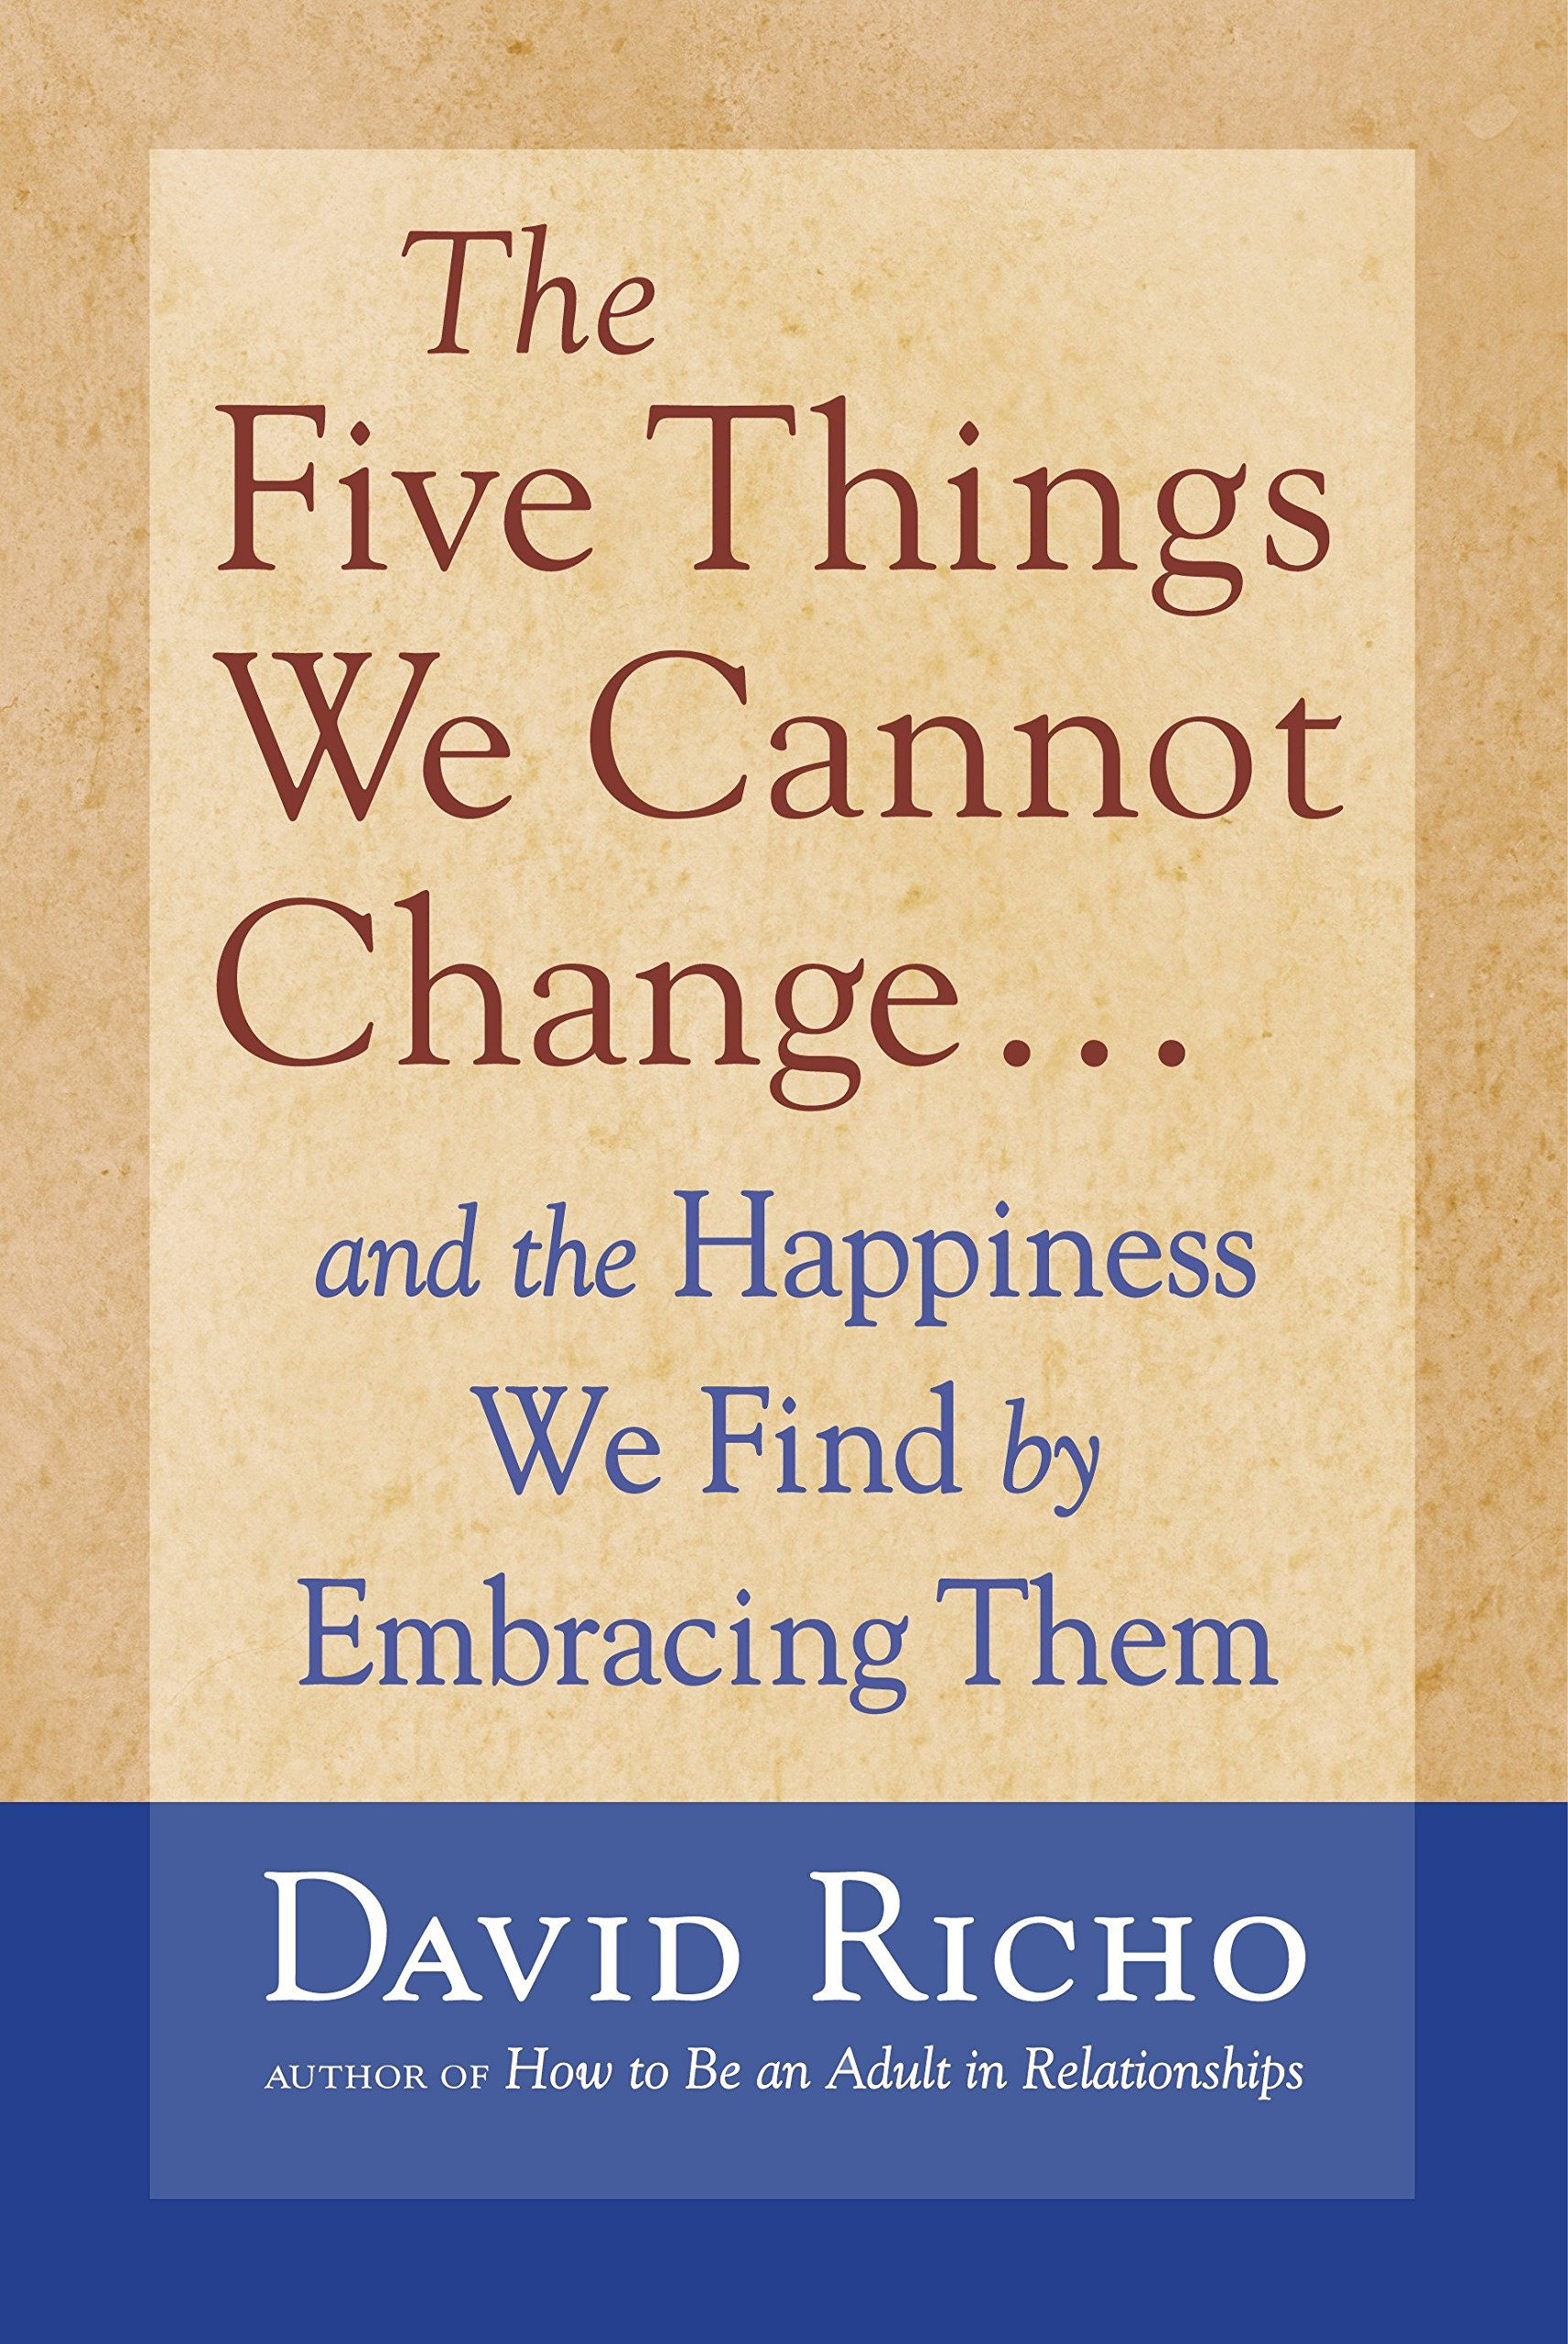 Download The Five Things We Cannot Change: And the Happiness We Find by Embracing Them pdf epub